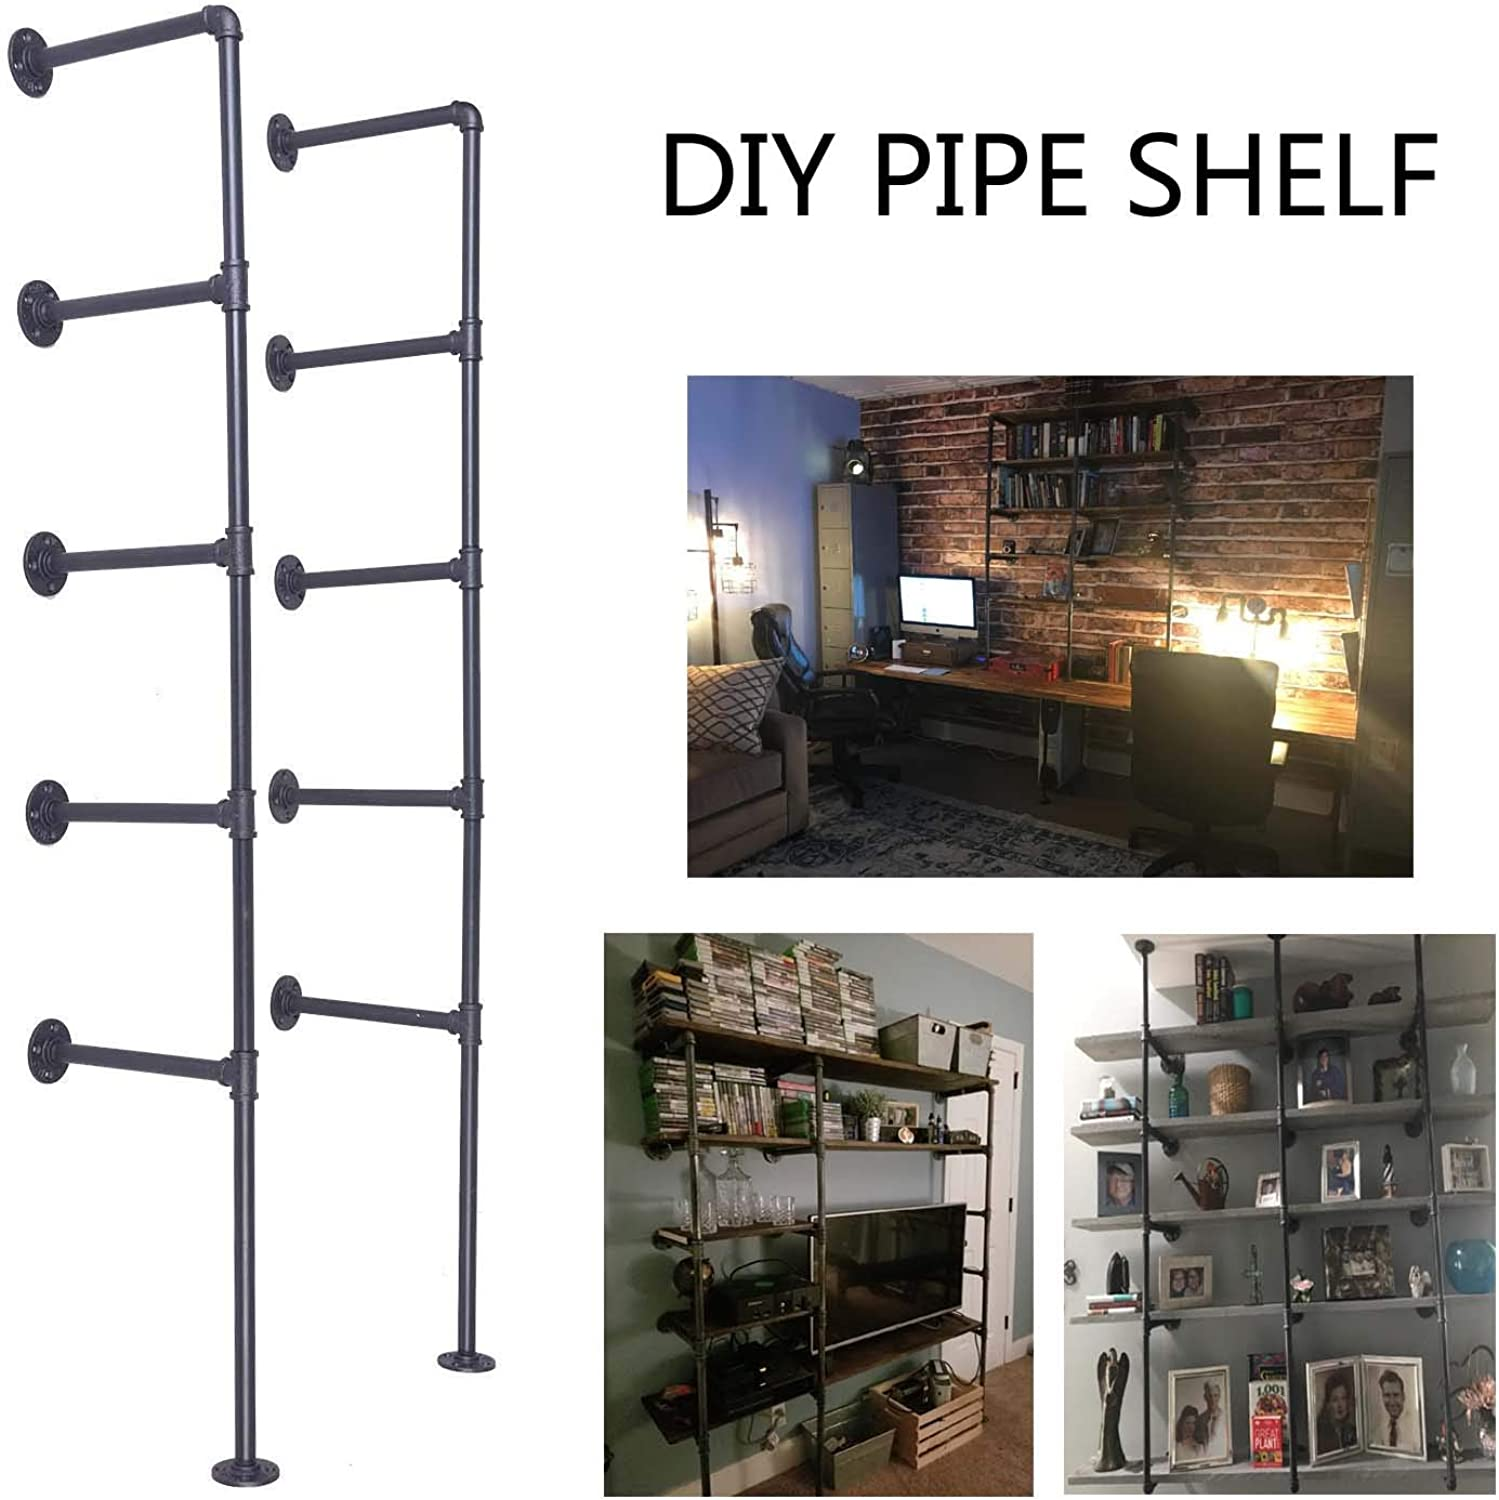 Topower Industrial French Country Style Decorative Pipe Wooden Wall ShelvesRustic DIYCeiling Five-Layer Pipe Shelf Wall Vintage Hung Bracket Industrial Shelves (Five-Layer × 2)